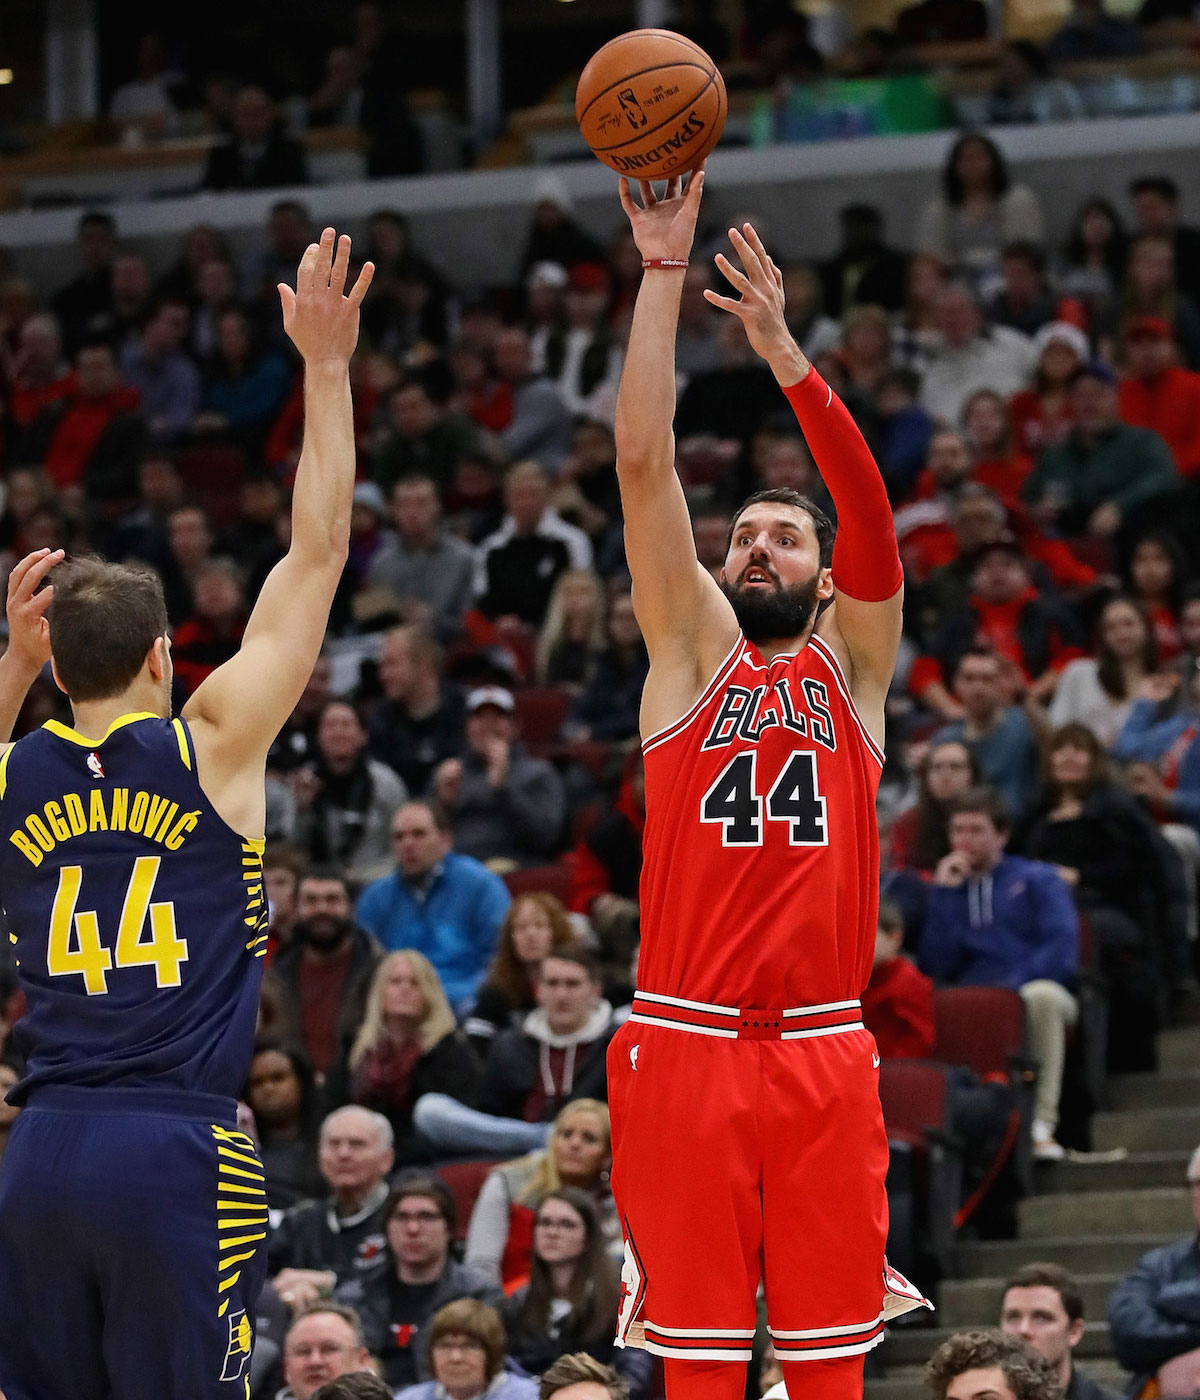 Nikola Mirotic shooting the basketball.